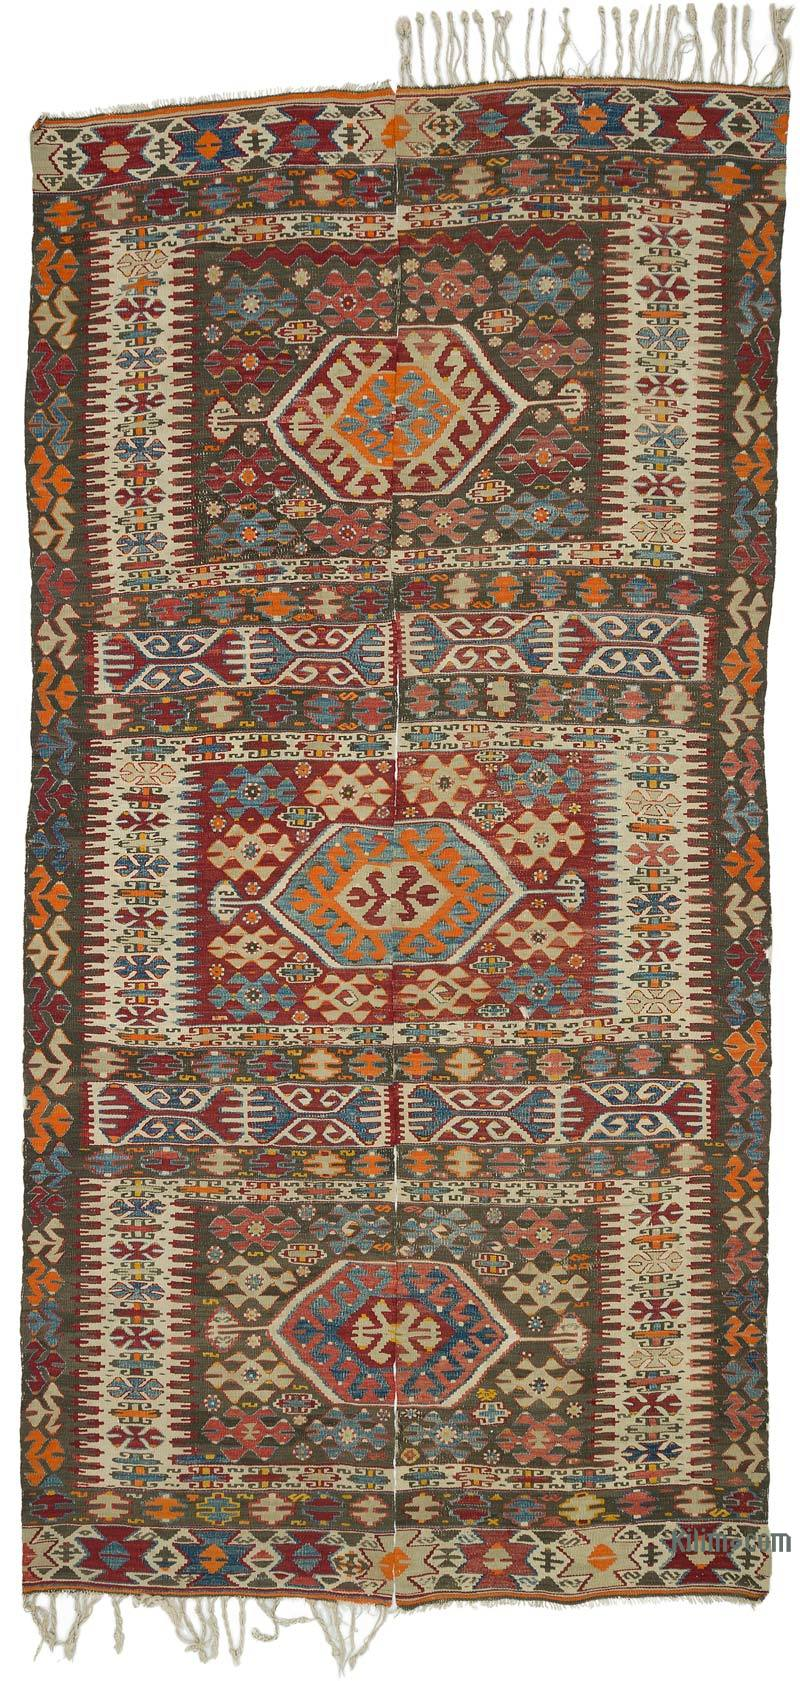 K0020928 Multicolor Antique Aydin Kilim Rug